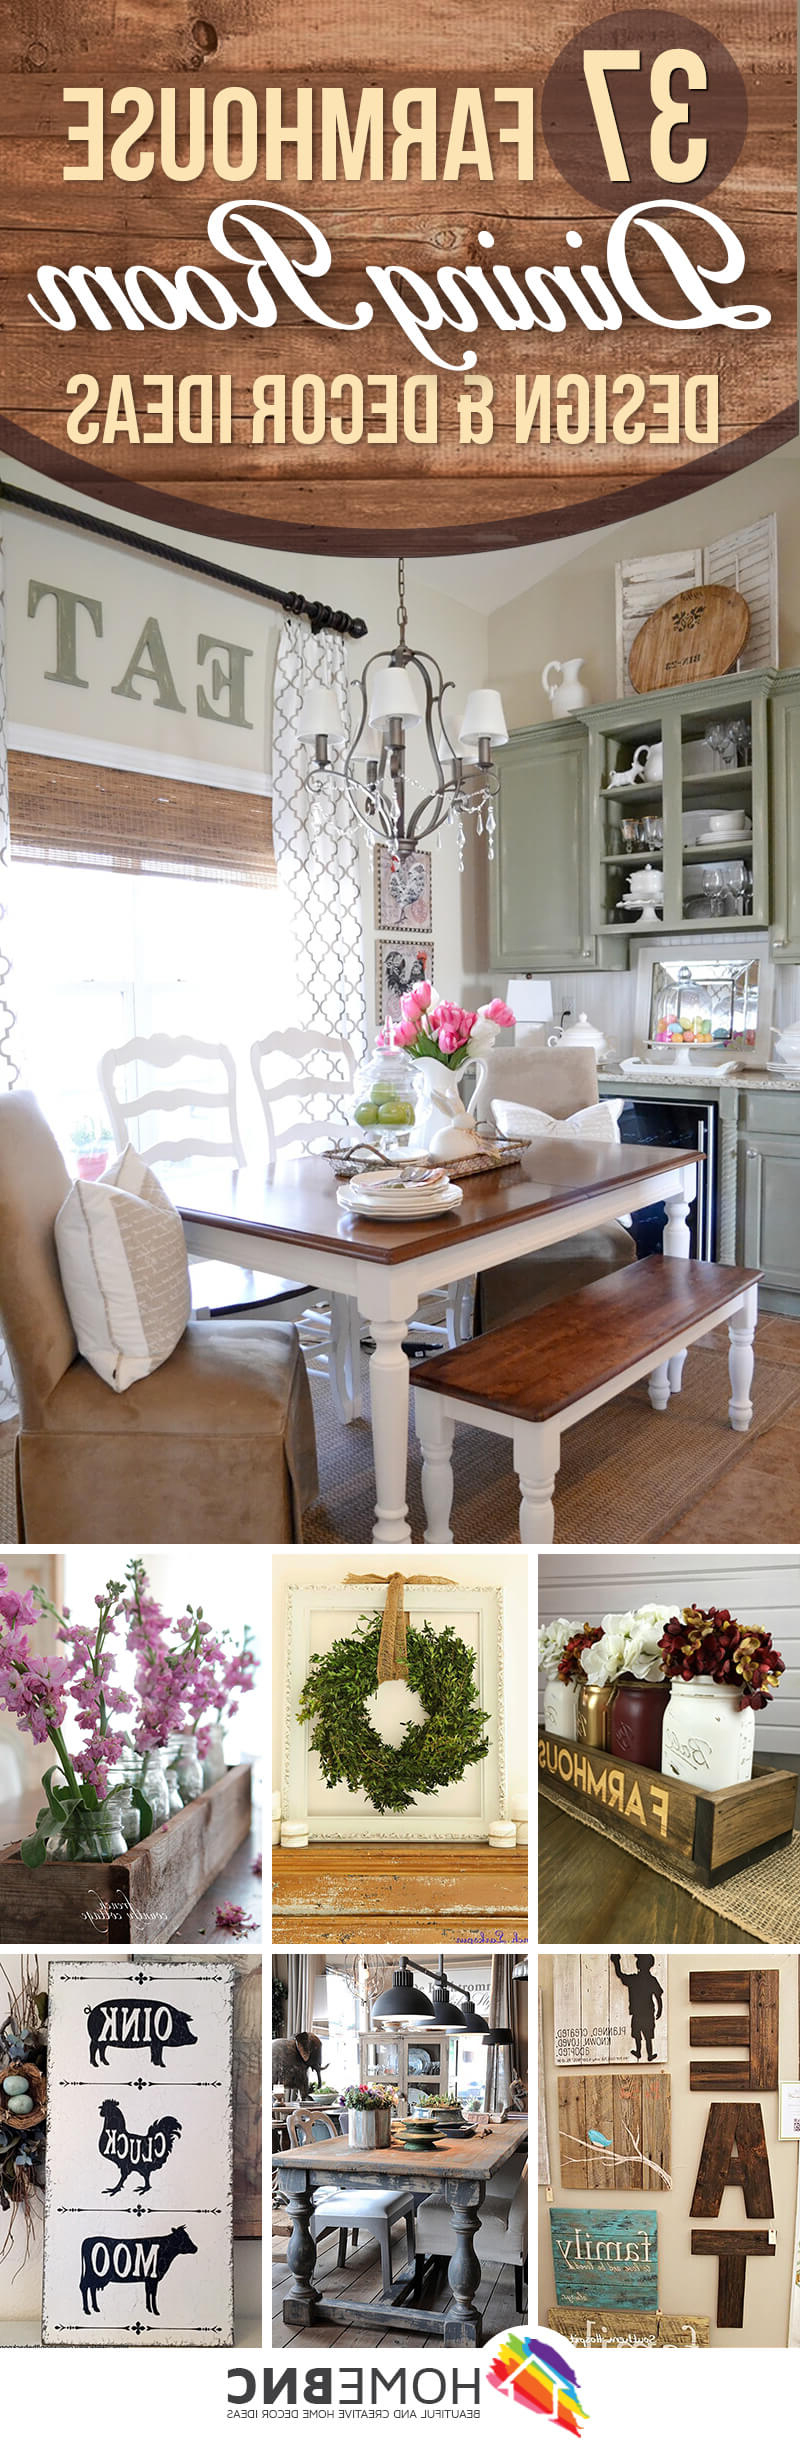 Favorite Casual Country Eat Here Retro Wall Decor With 37 Best Farmhouse Dining Room Design And Decor Ideas For  (View 12 of 20)